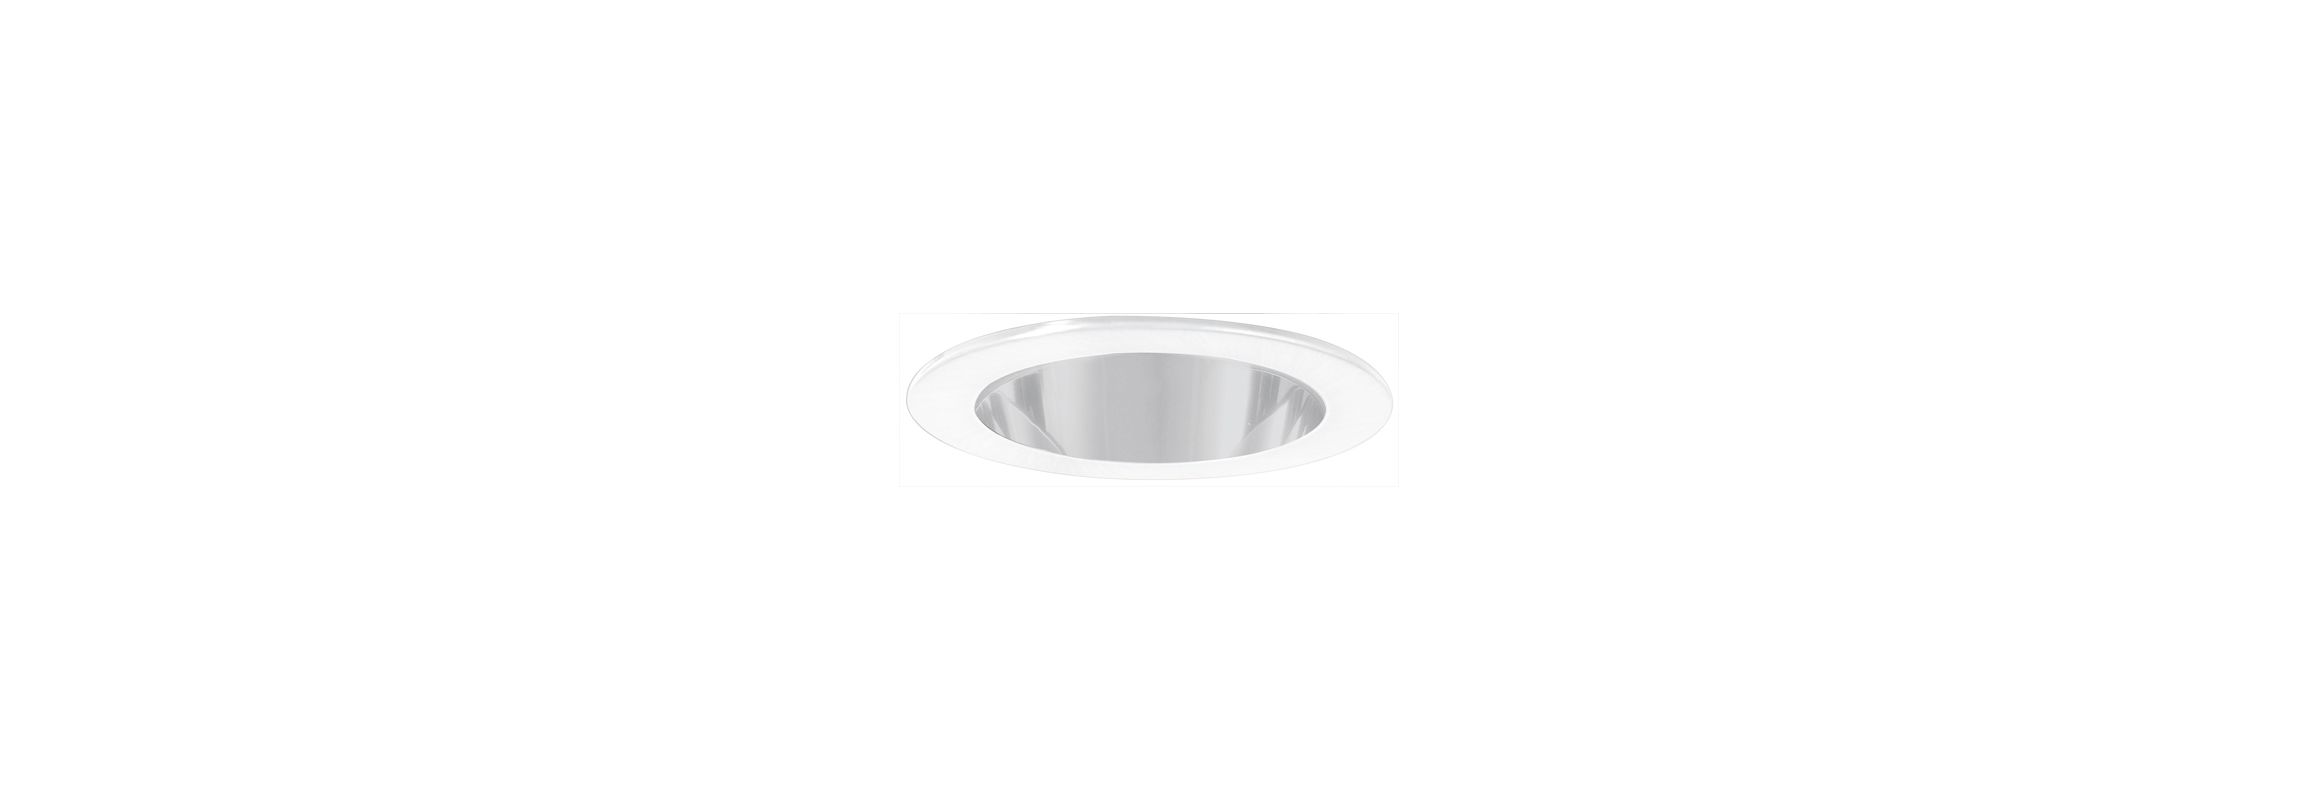 """Elco EL911 4"""" CFL Shower Trim with Clear Lens White Recessed Lights"""